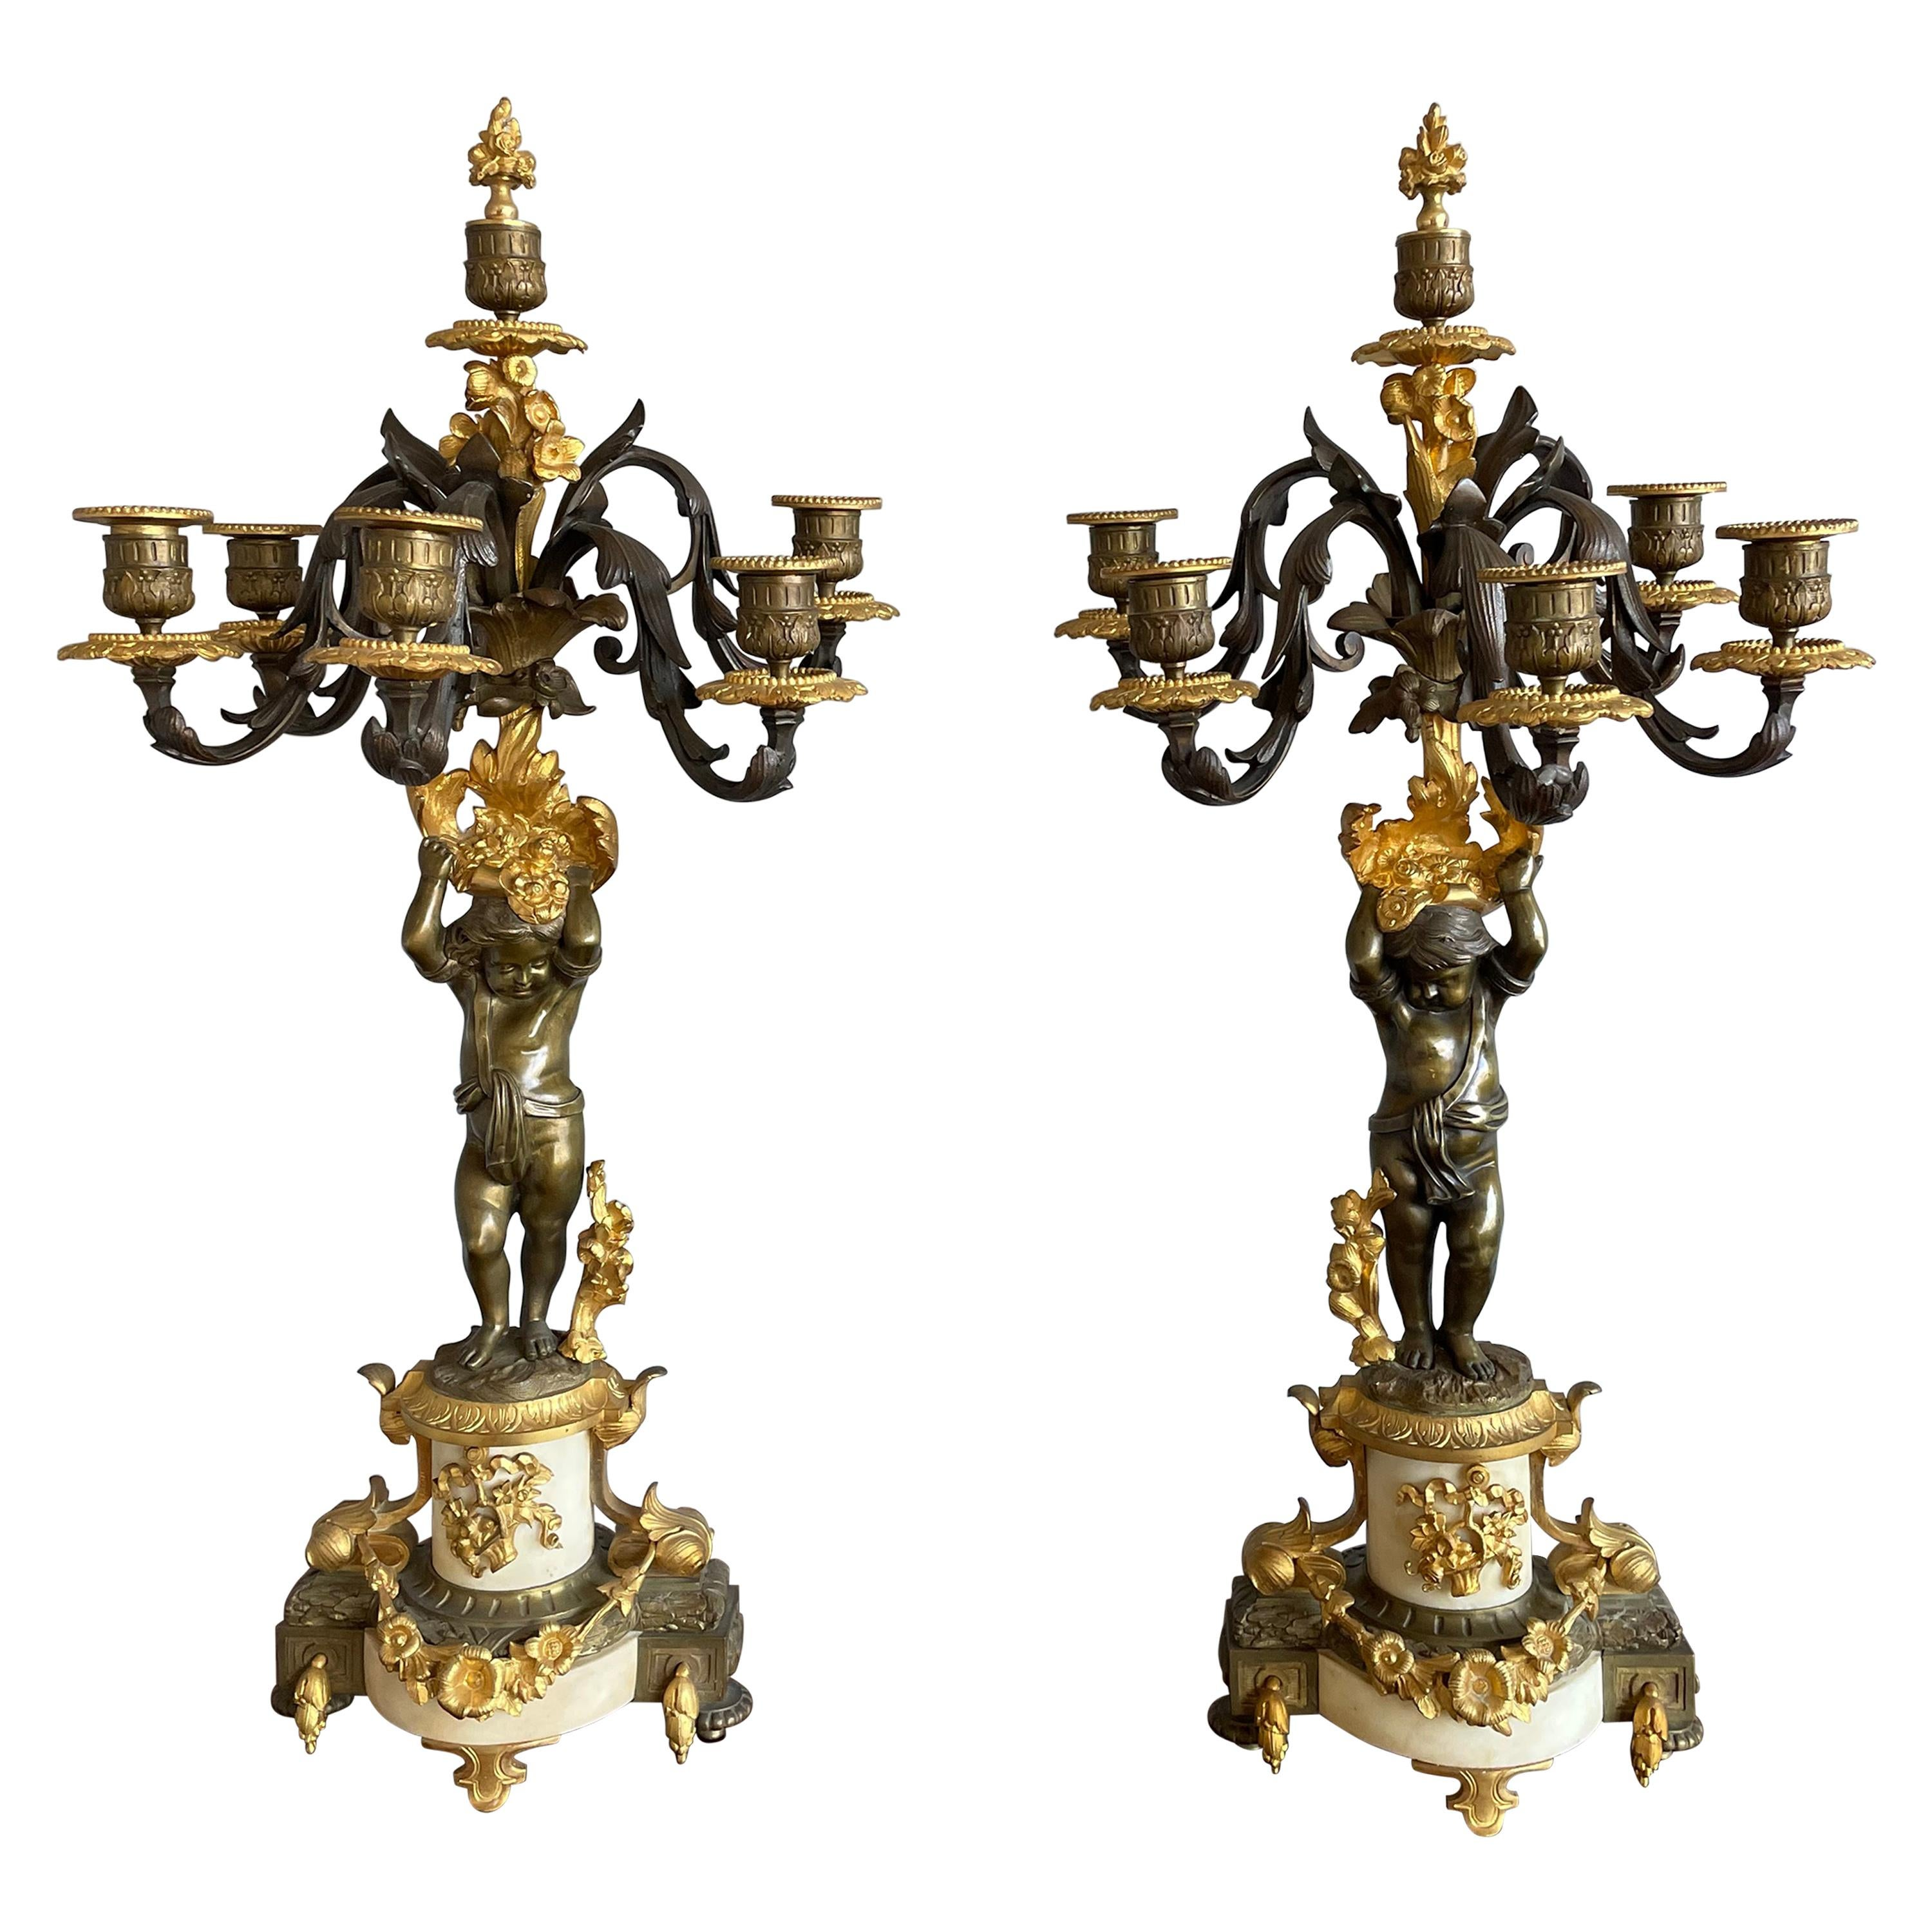 Stunning Pair of French Louis XVI Style Gilt Bronze & Marble Candle Candelabras